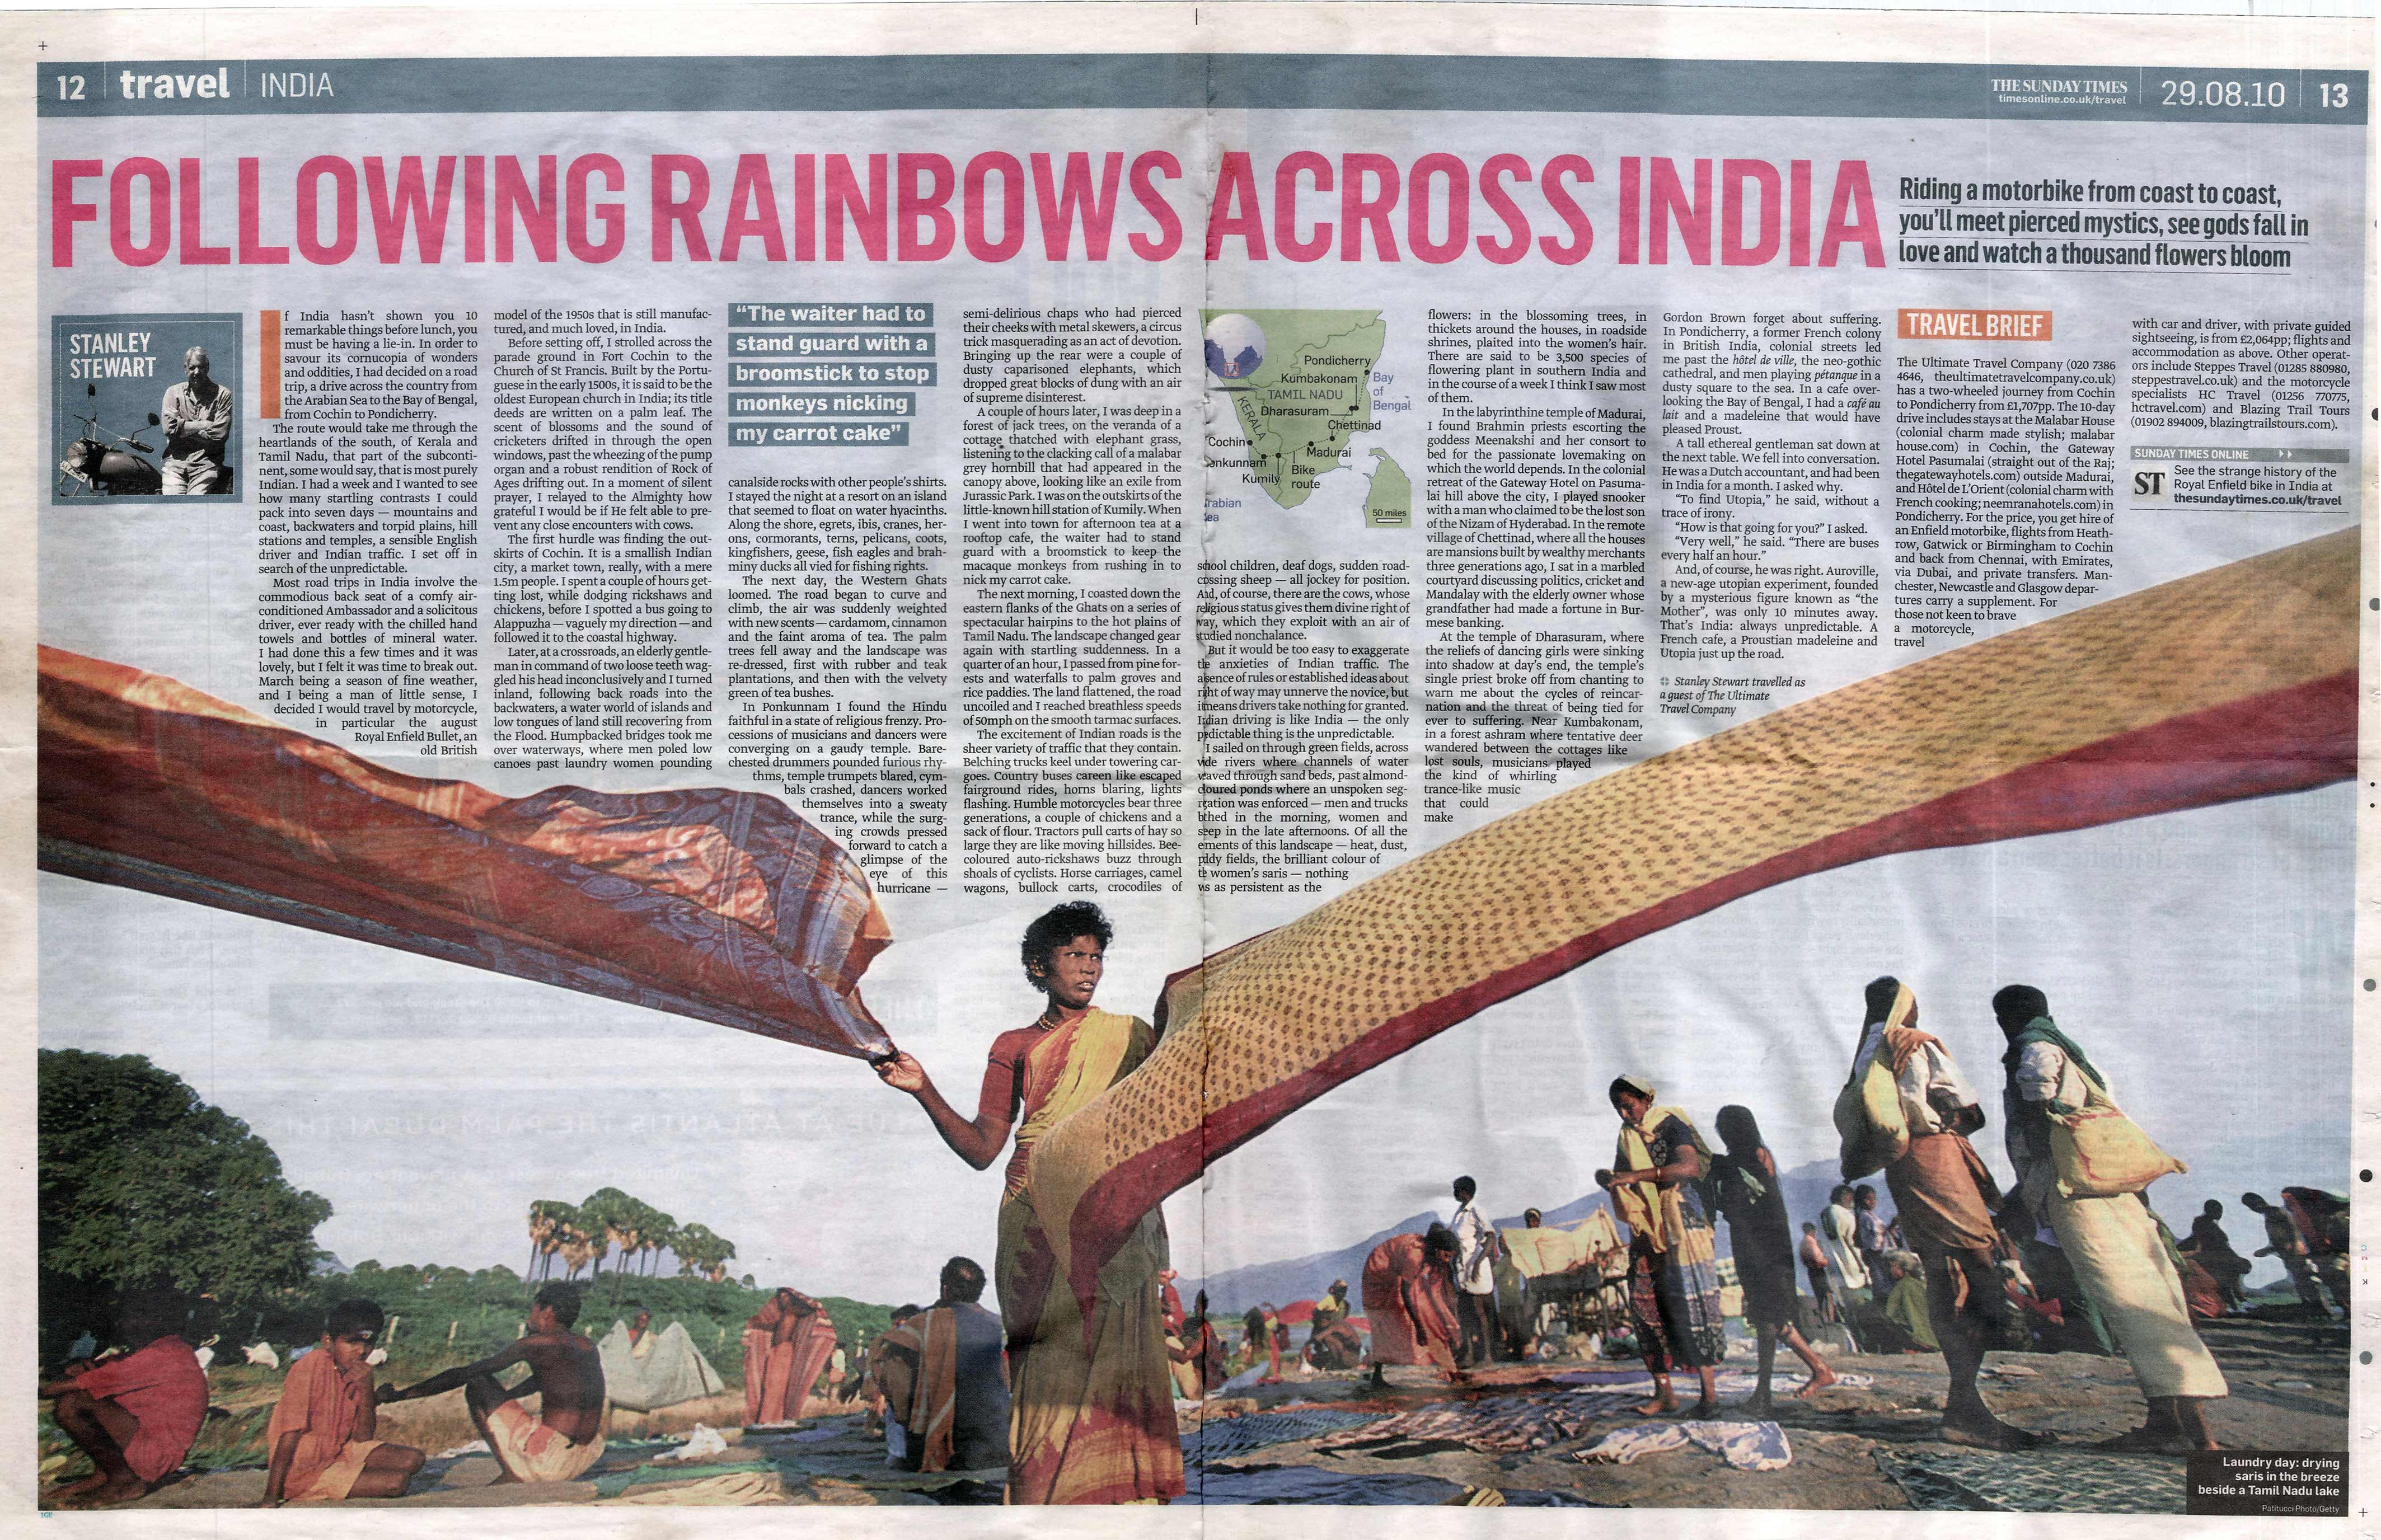 FOLLOWING RAINBOWS ACROSS INDIA